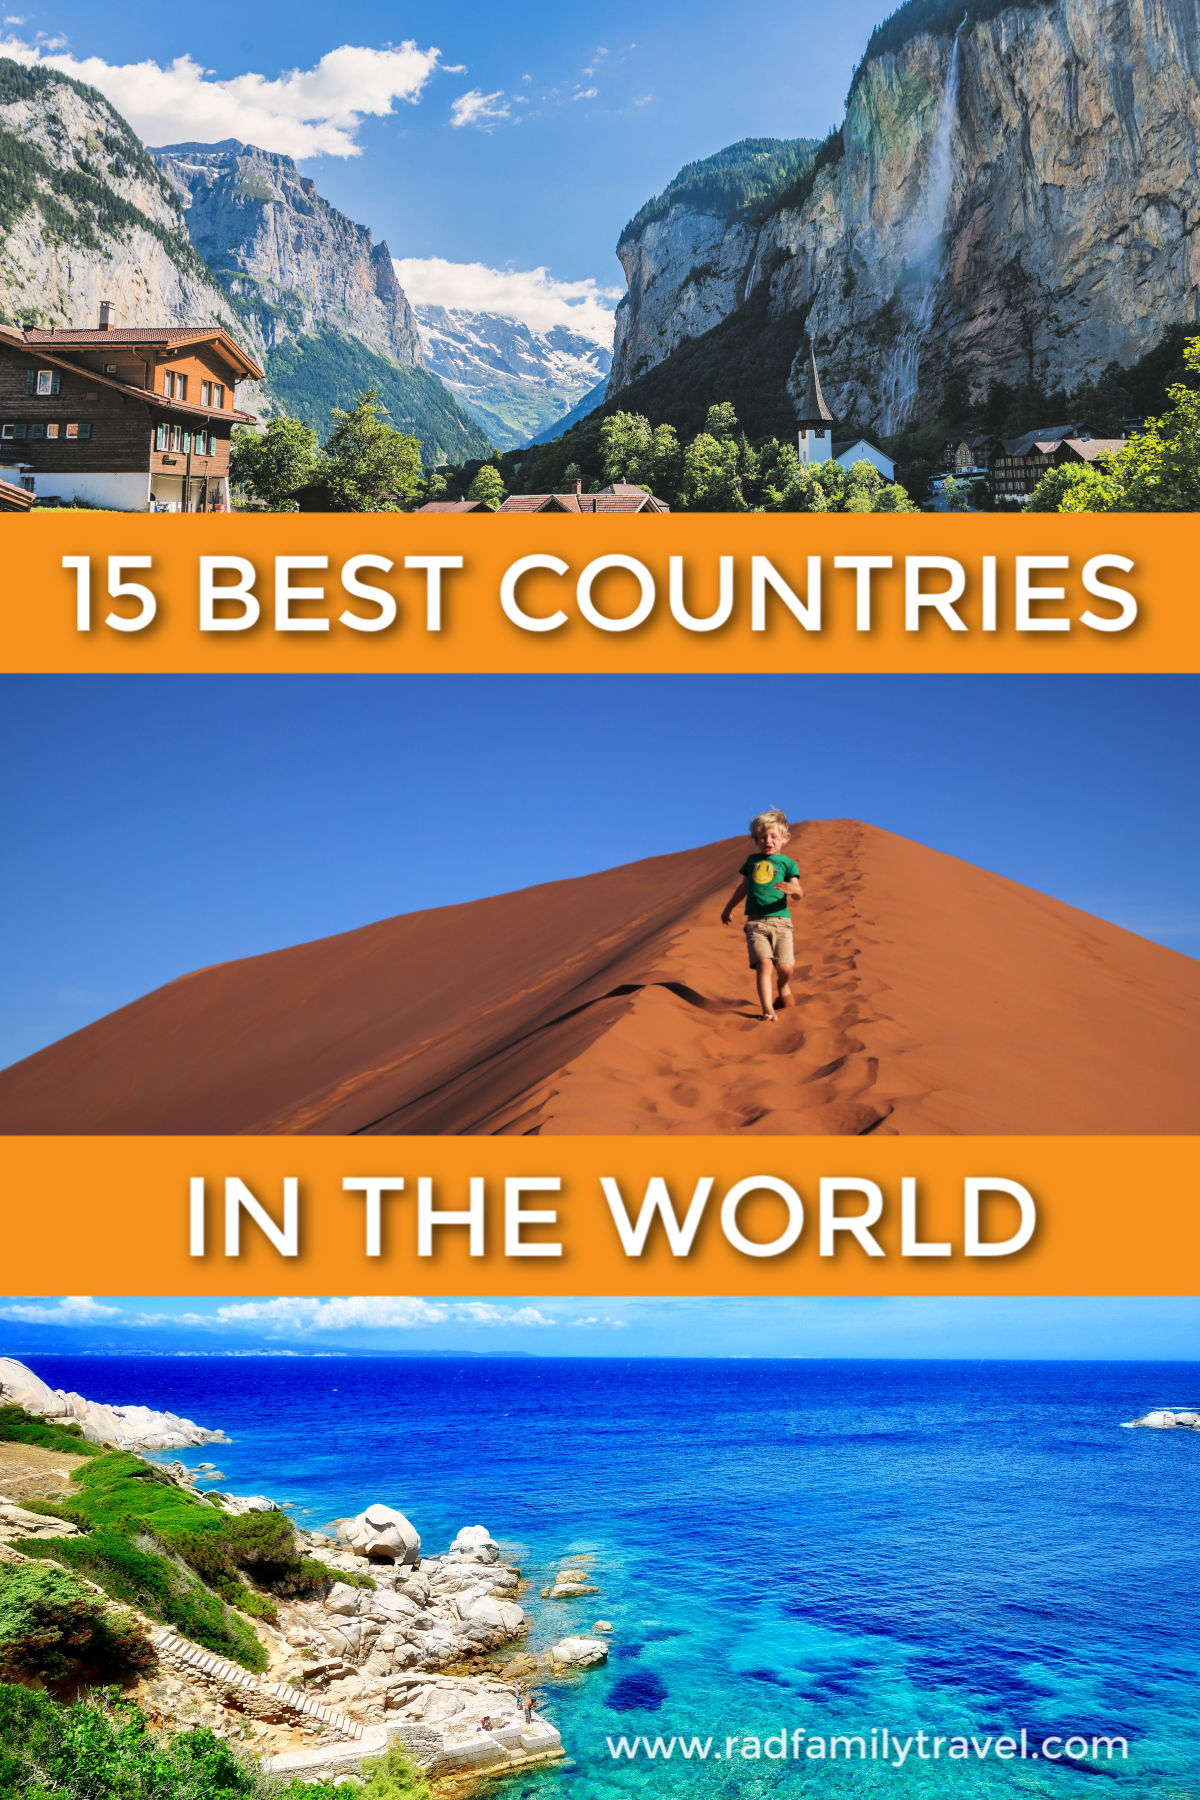 15 best countries in the world